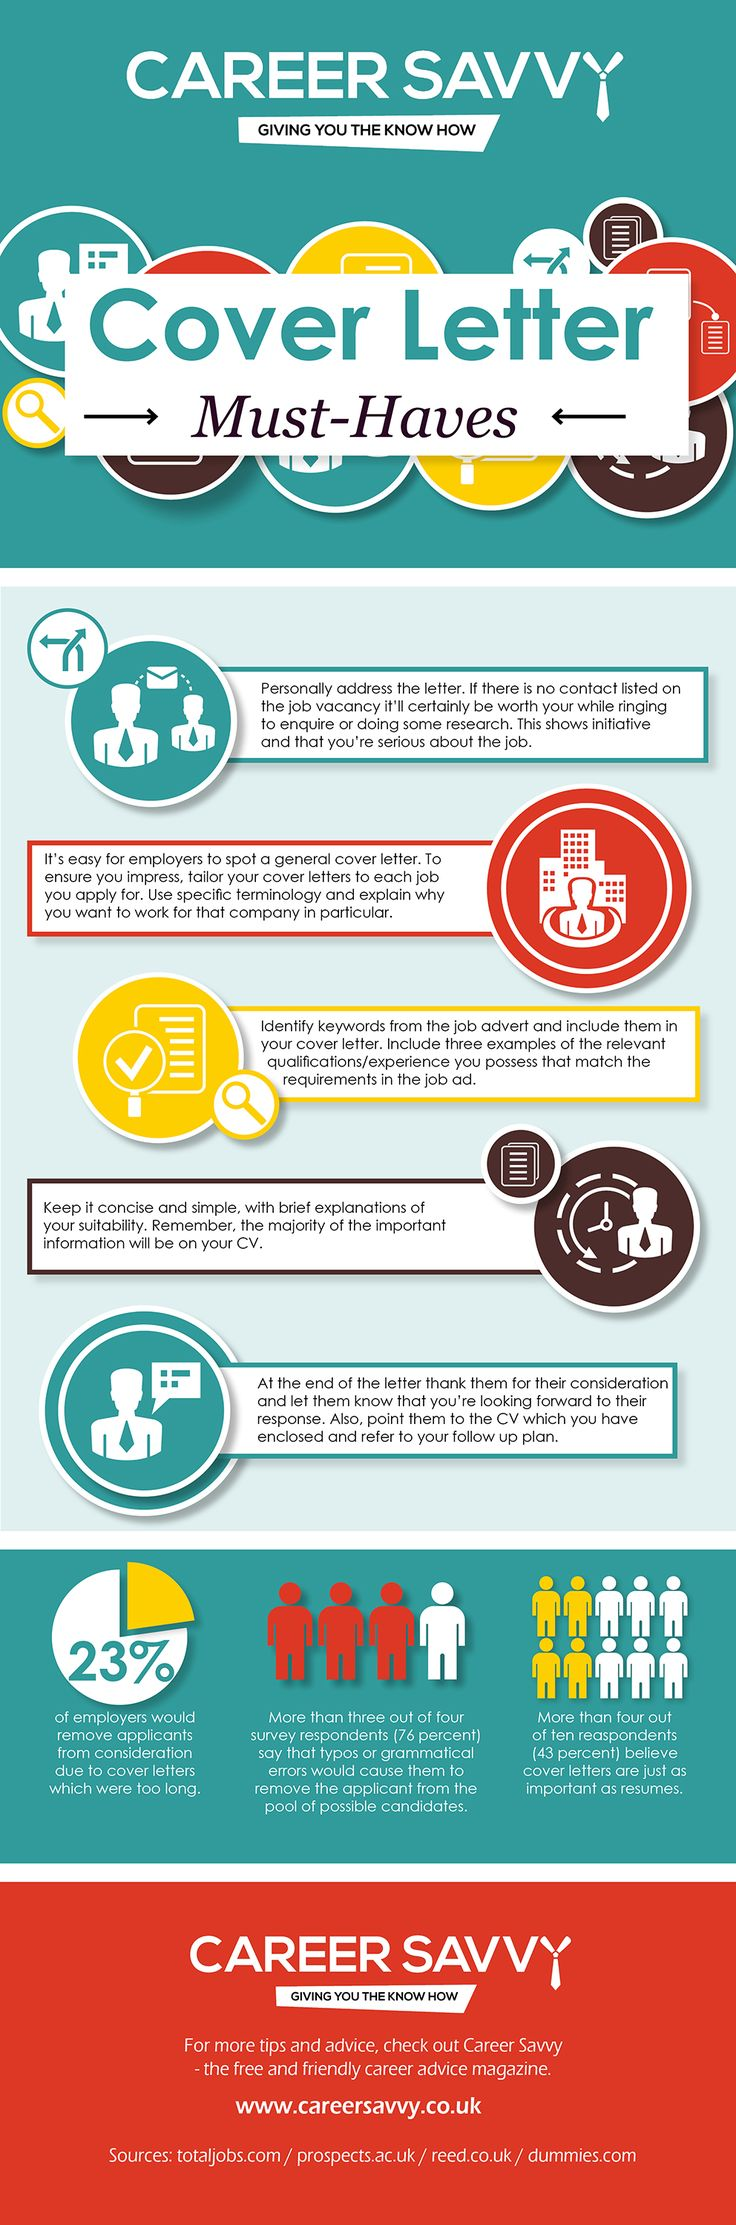 Best 25 Cover letter tips ideas on Pinterest  Job search